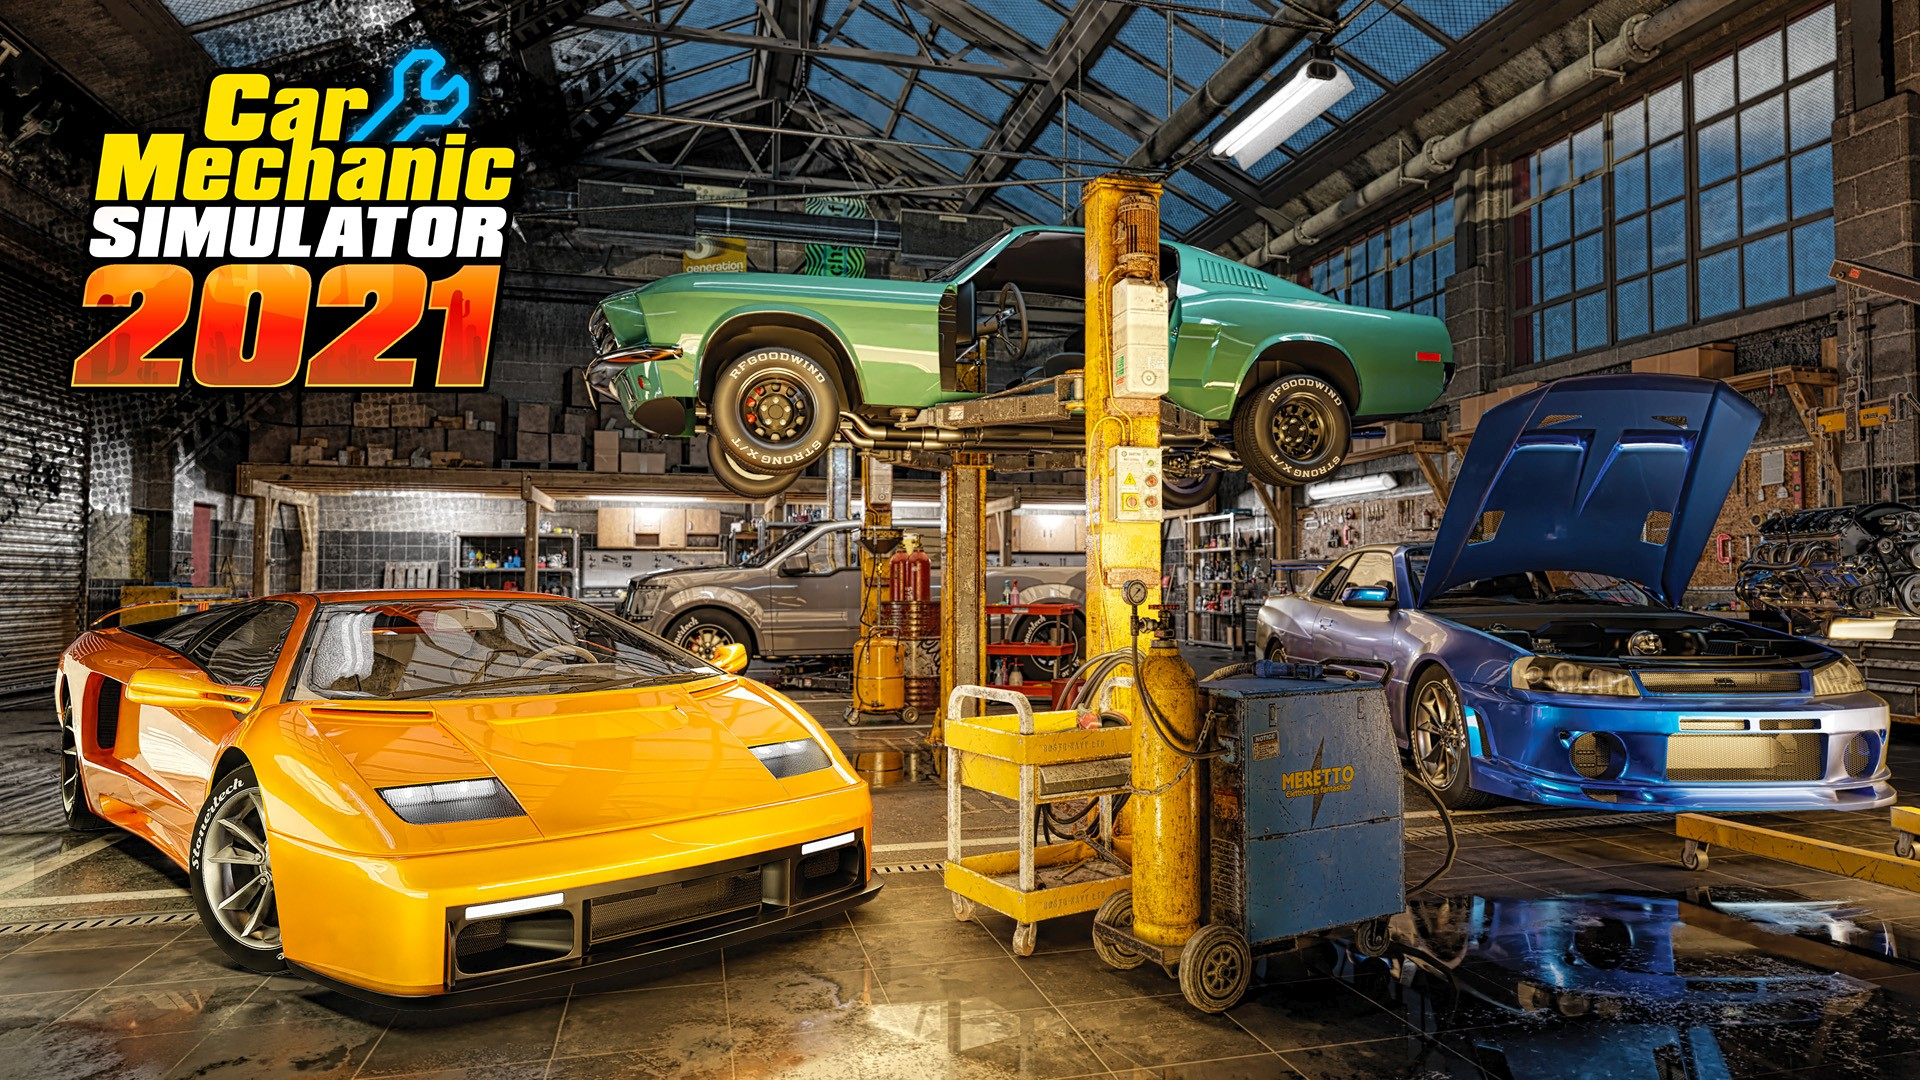 Video For Car Mechanic Simulator 2021 is Available Now for Xbox One and Xbox Series X|S